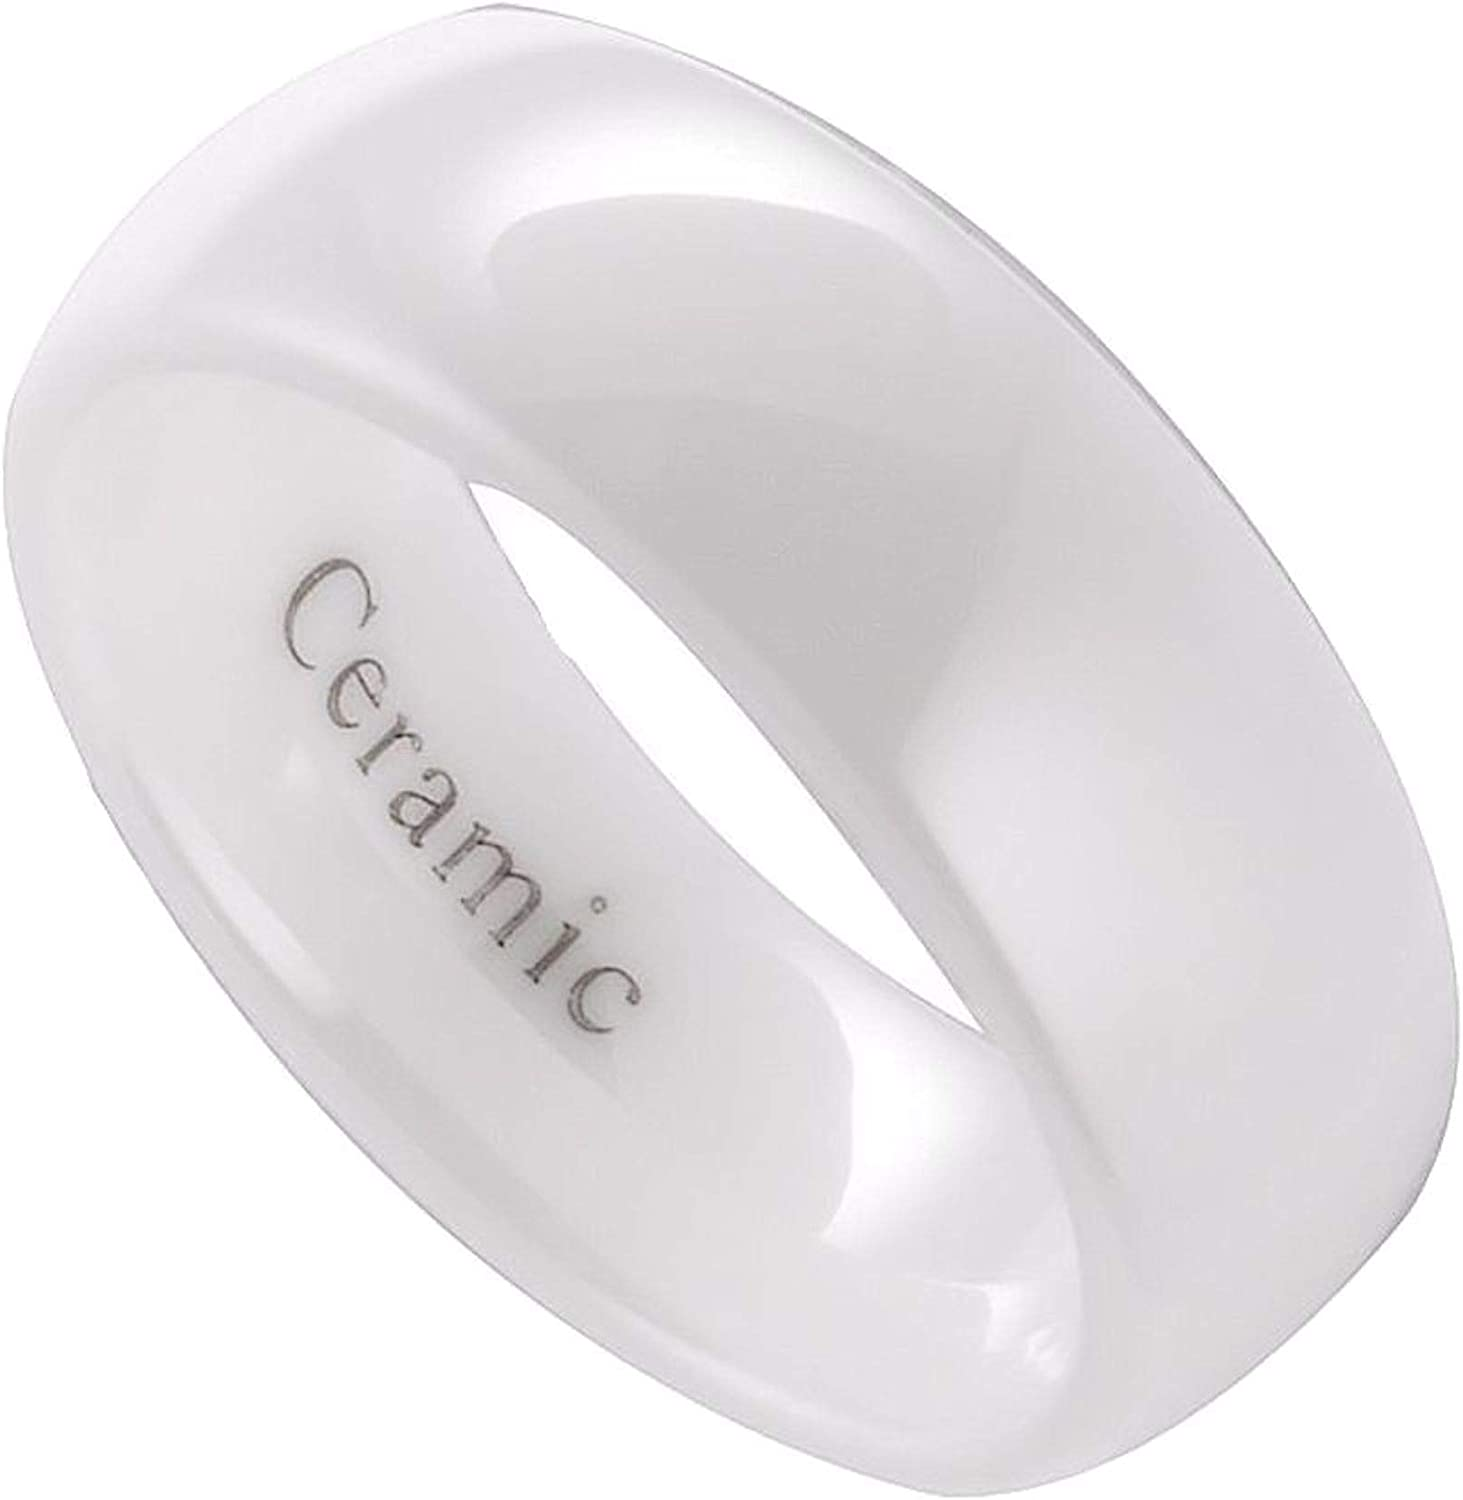 MJ Metals Jewelry White Ceramic Wedding Ring Classic High Polished Band 3, 4, 6, 8, 10mm